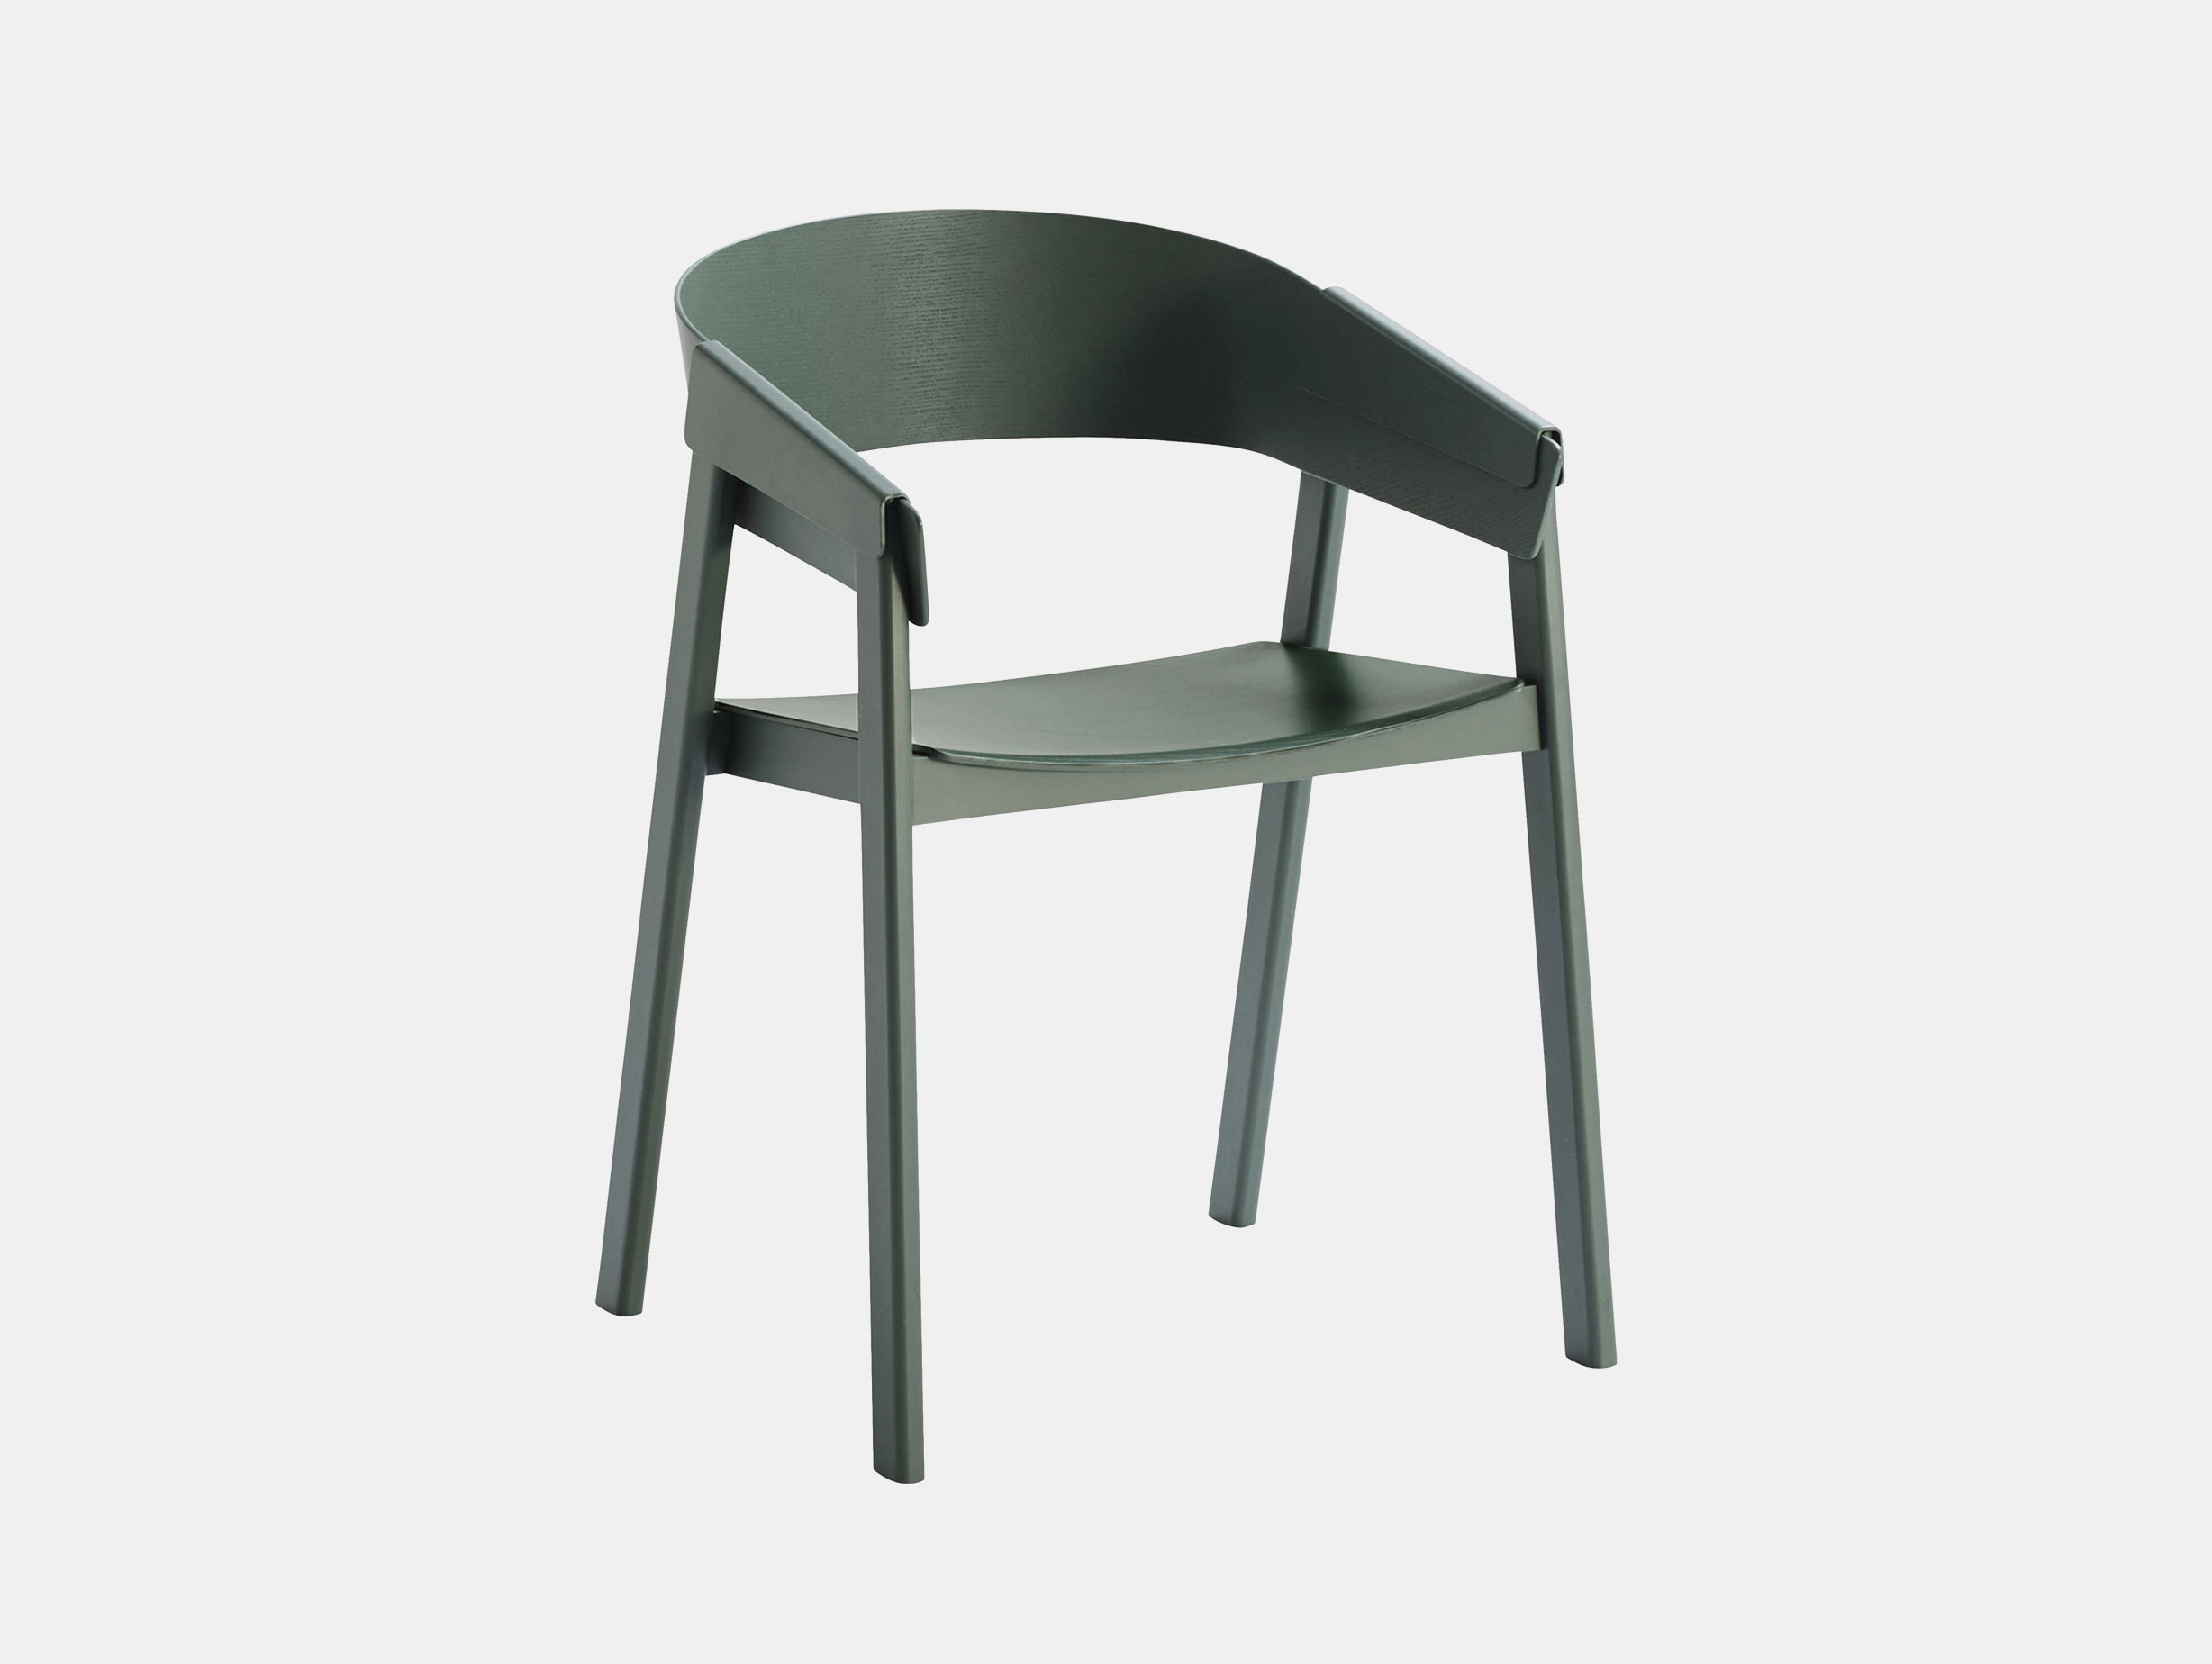 Cover Chair image 3